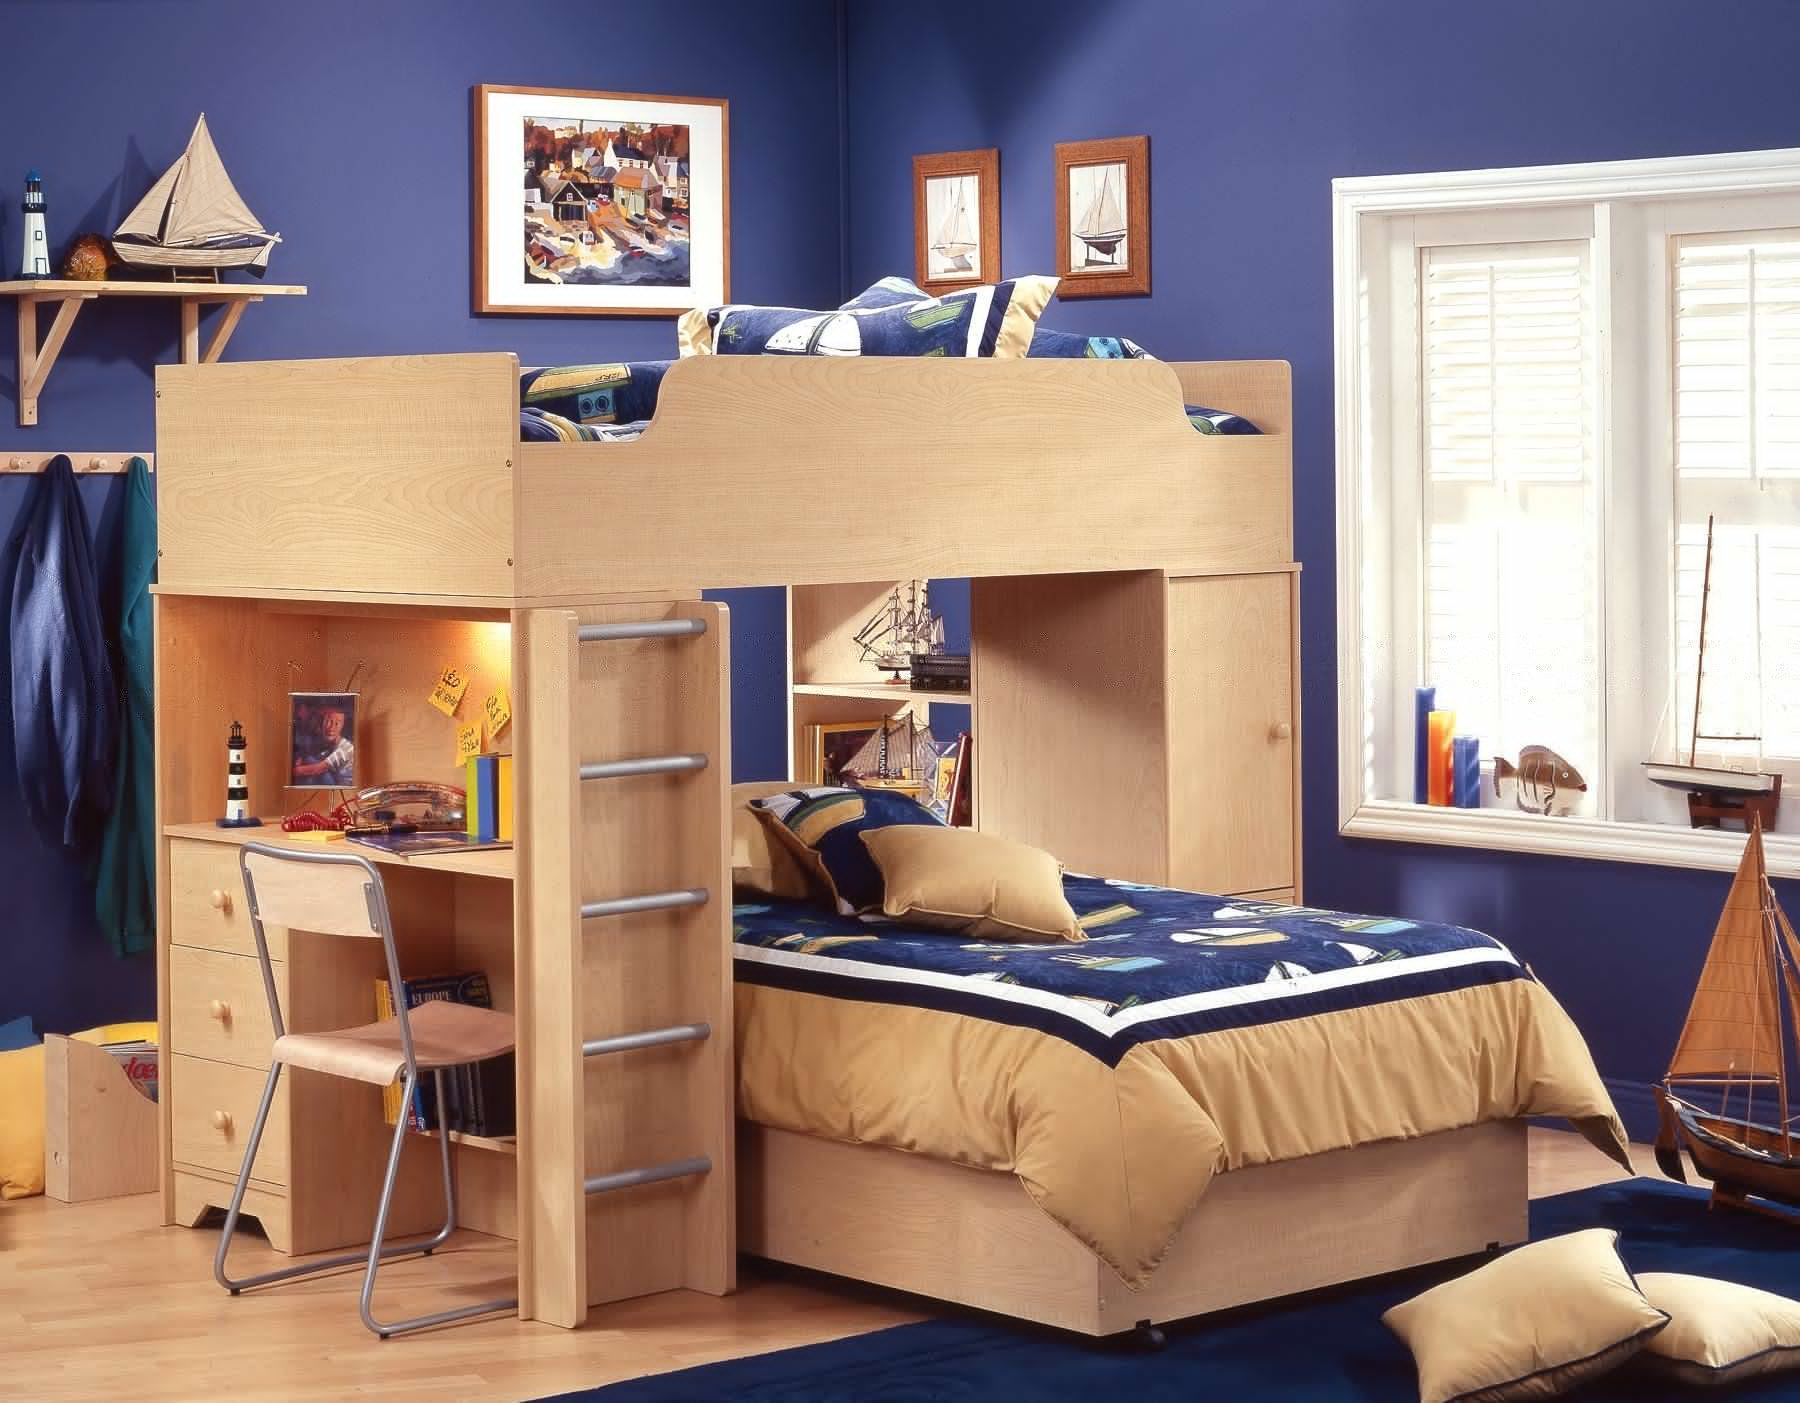 Diy Bunk Bed Plans with Stairs | Bunk Beds for Small Rooms | Bunk Bed for Teenager